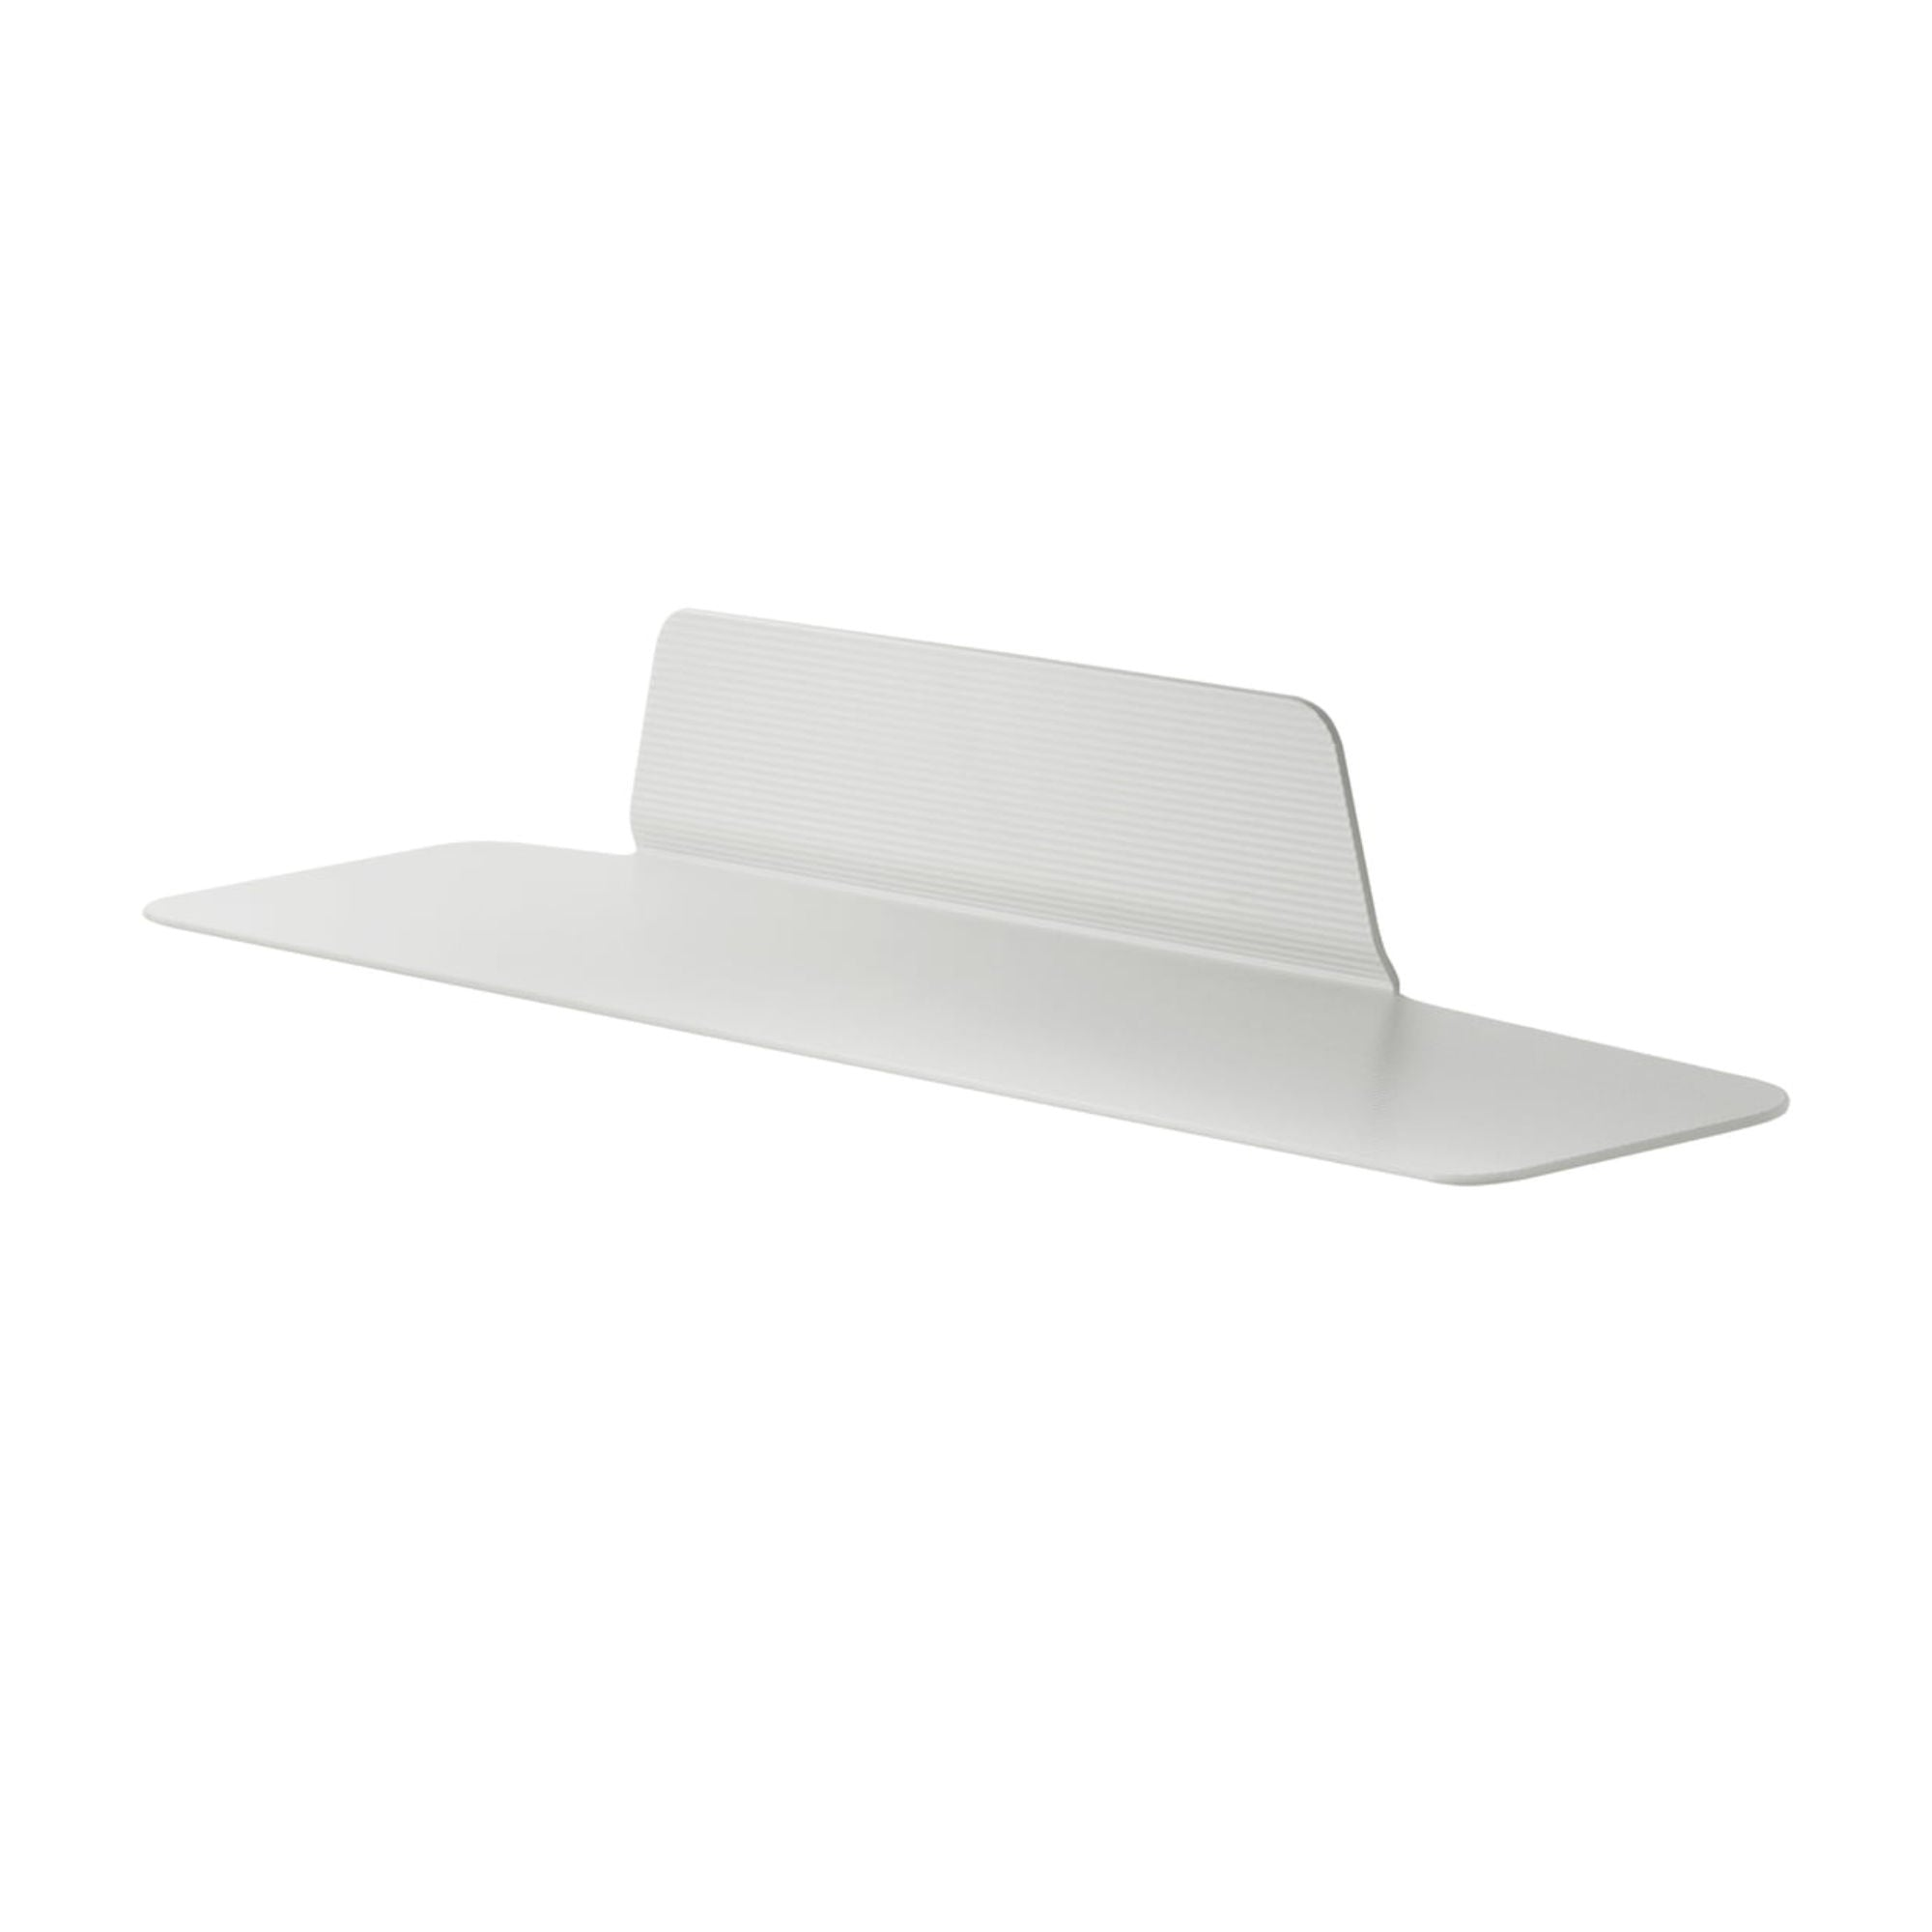 Normann Copenhagen Jet Wall Shelf 80cm , White